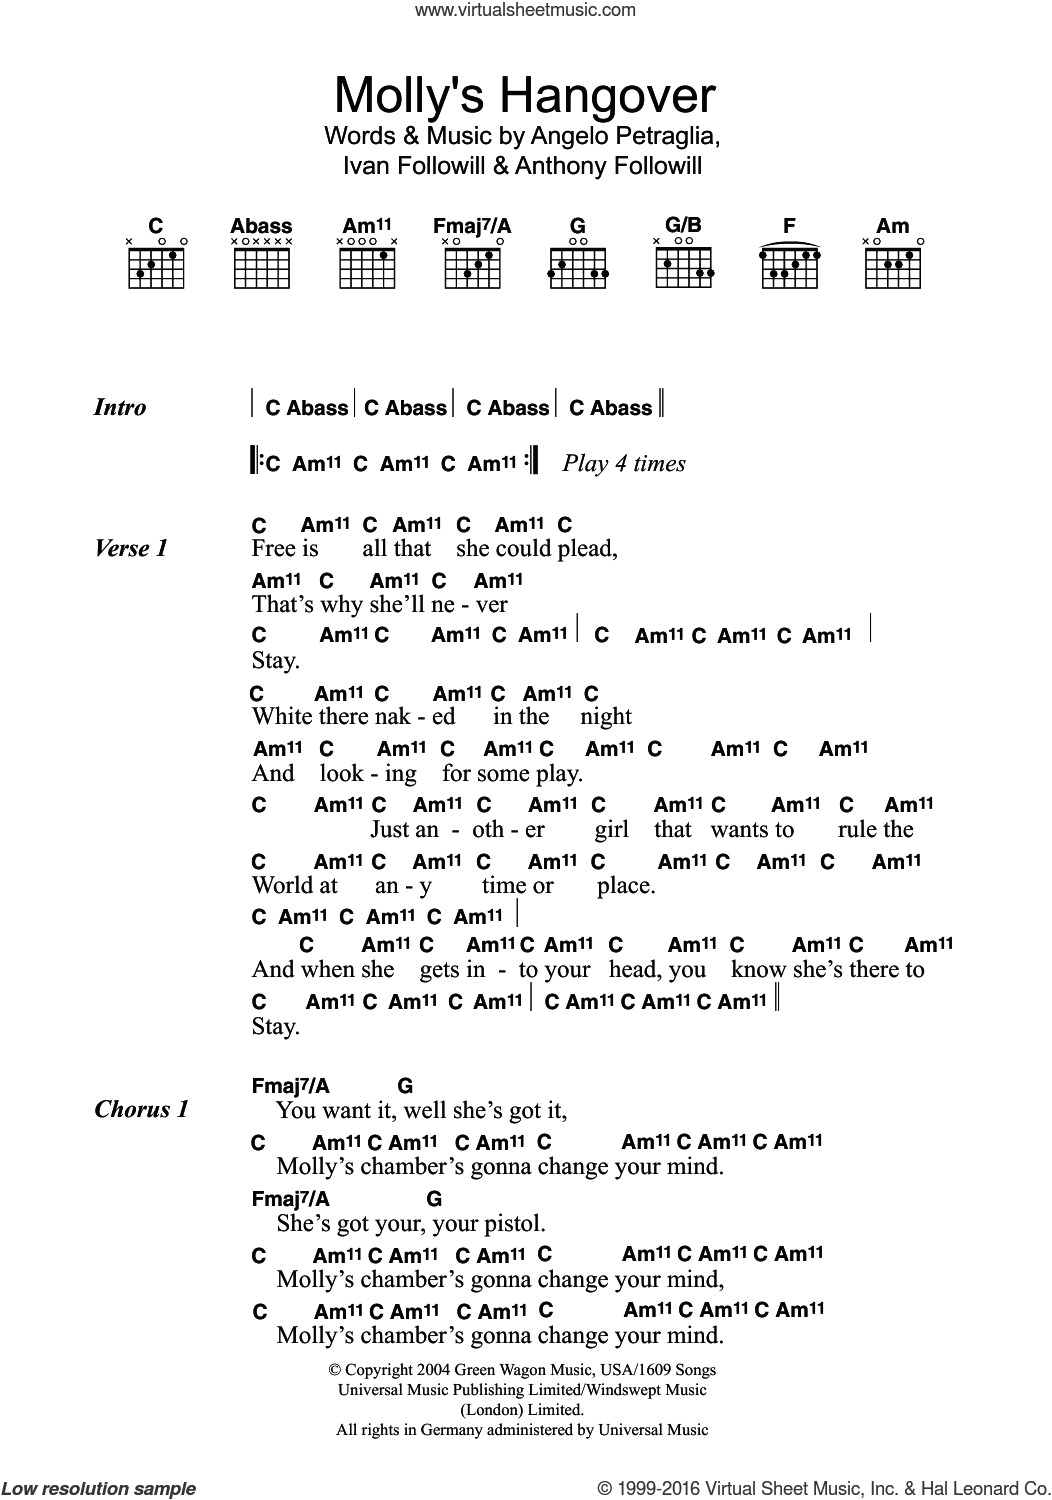 Molly's Hangover sheet music for guitar (chords) by Kings Of Leon, Angelo Petraglia, Anthony Followill and Ivan Followill, intermediate skill level